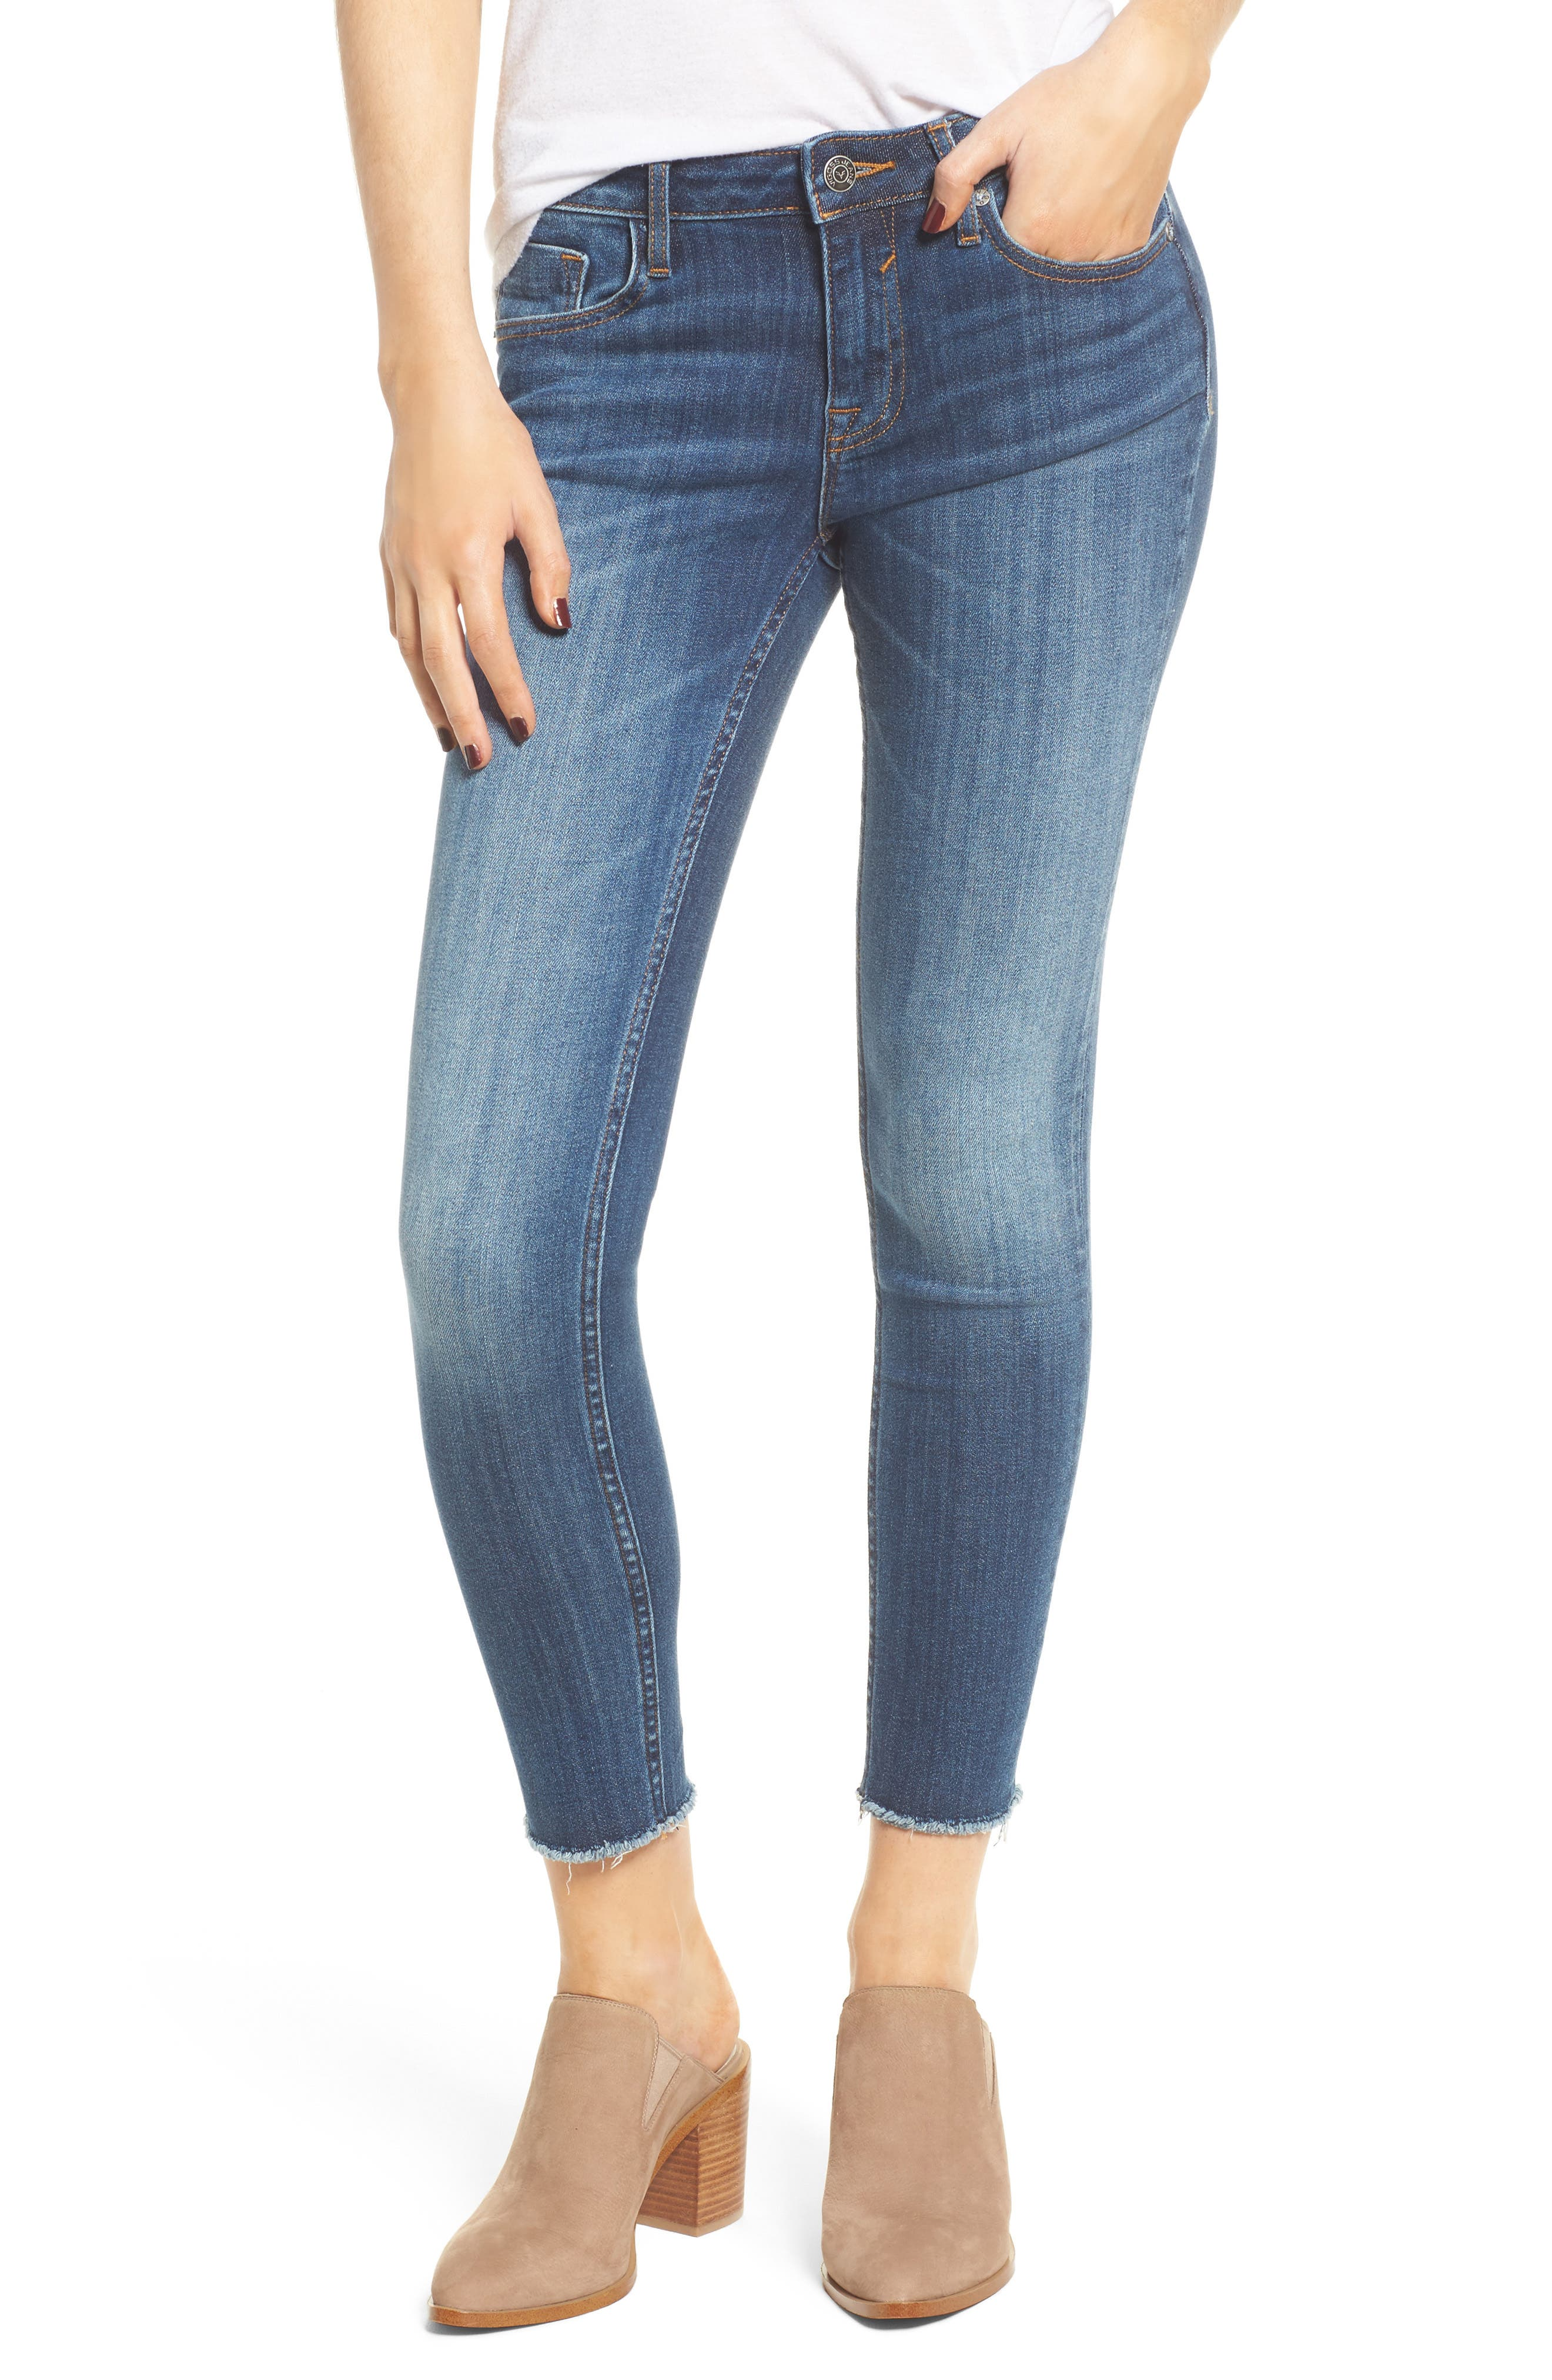 Jagger Mid-Rise Skinny Jeans,                         Main,                         color, 403